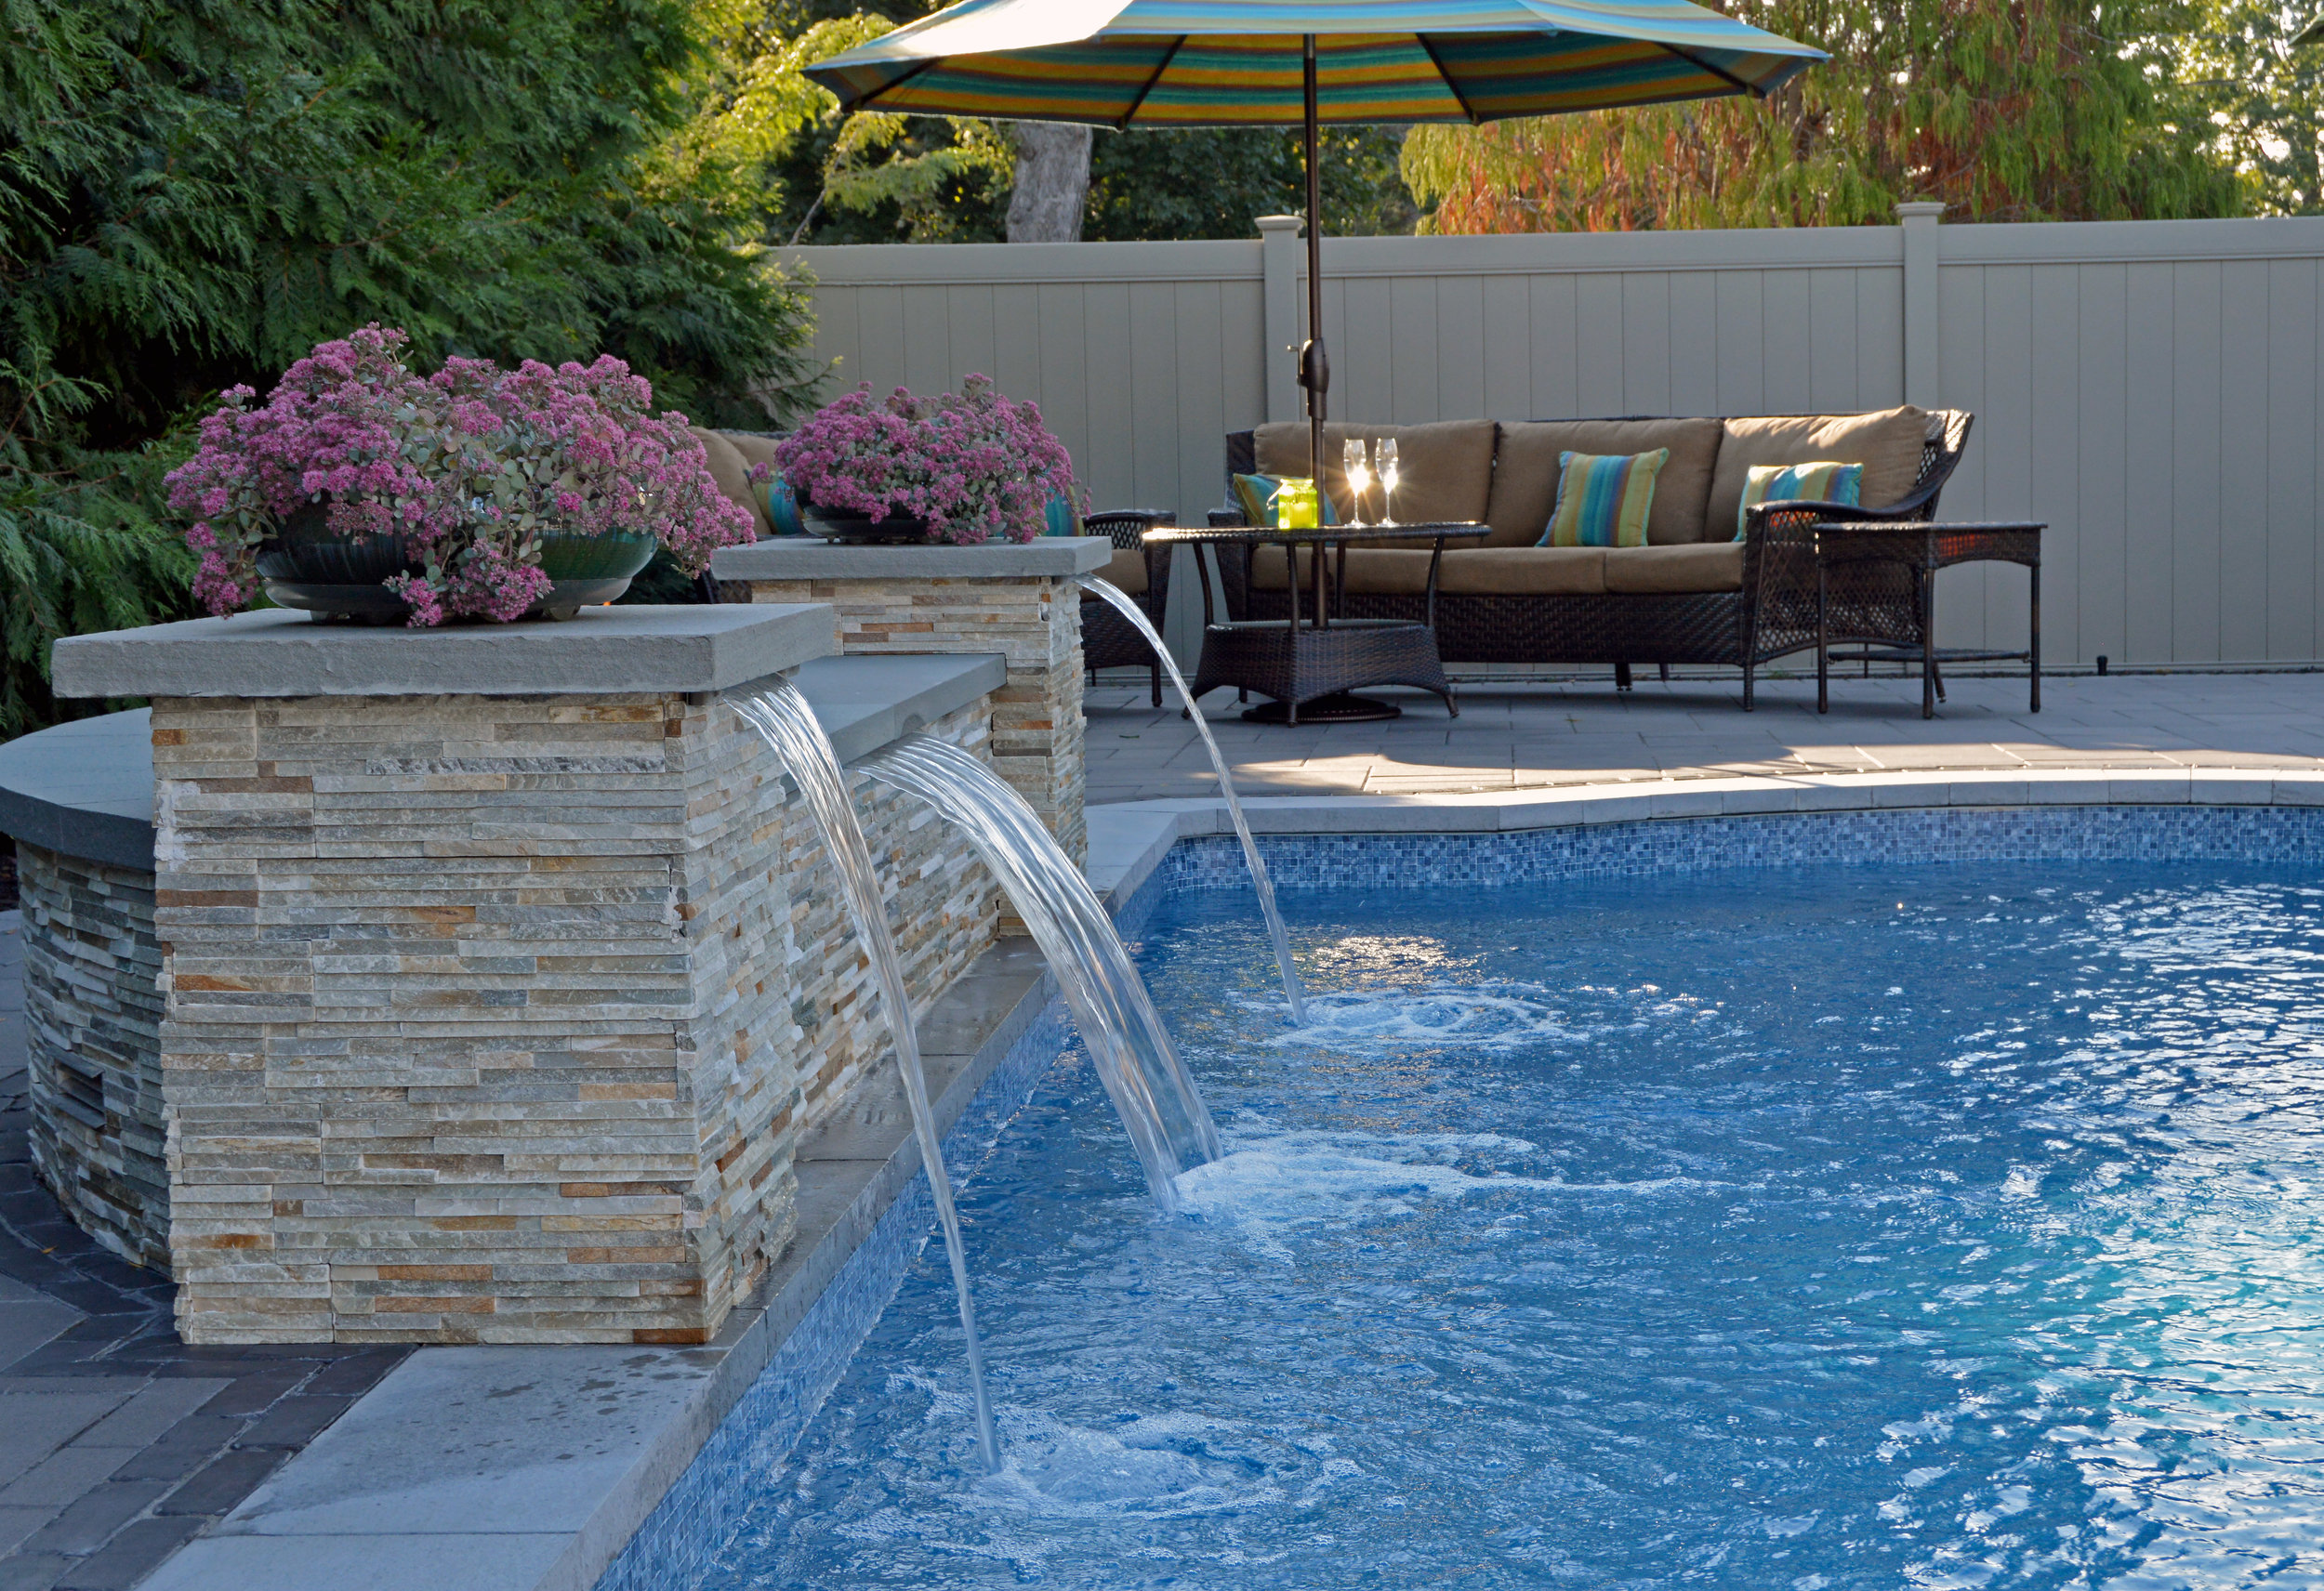 Hicksville, NY fire feature in swimming pool and paver patio